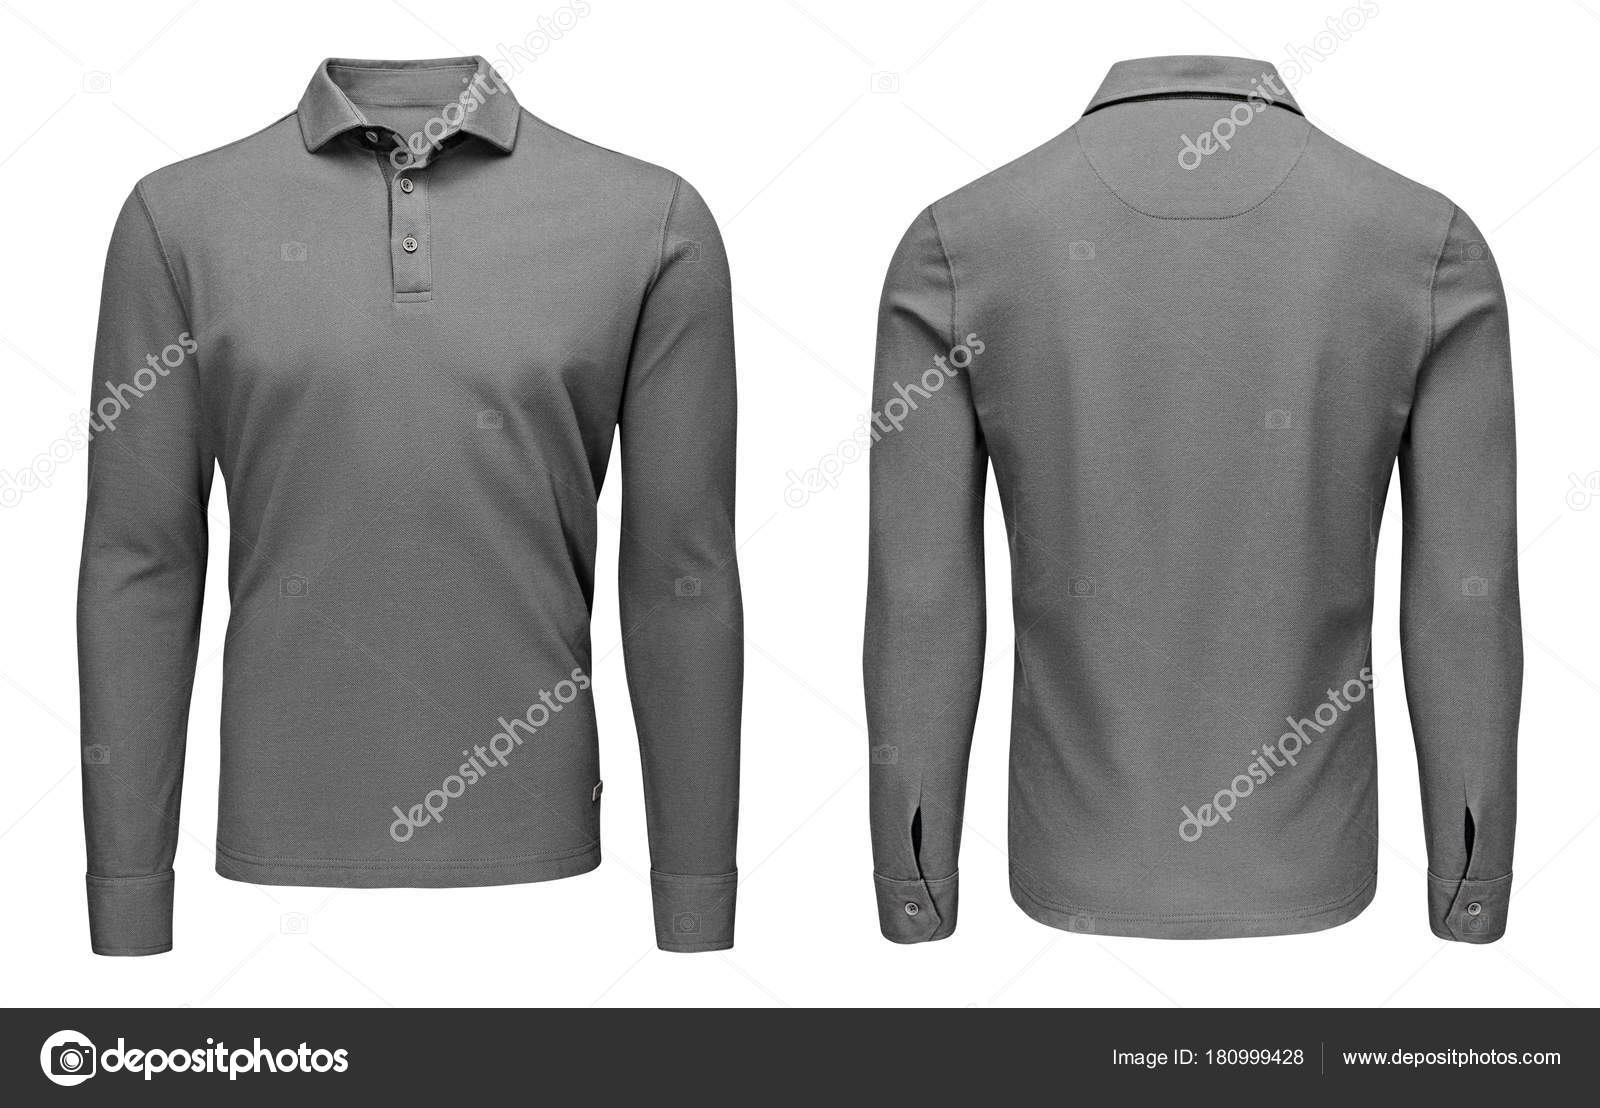 Blank Template Mens Grey Polo Shirt Long Sleeve Front And Back View Isolated On White Background With Clipping Path Design Sweatshirt Mockup For Print